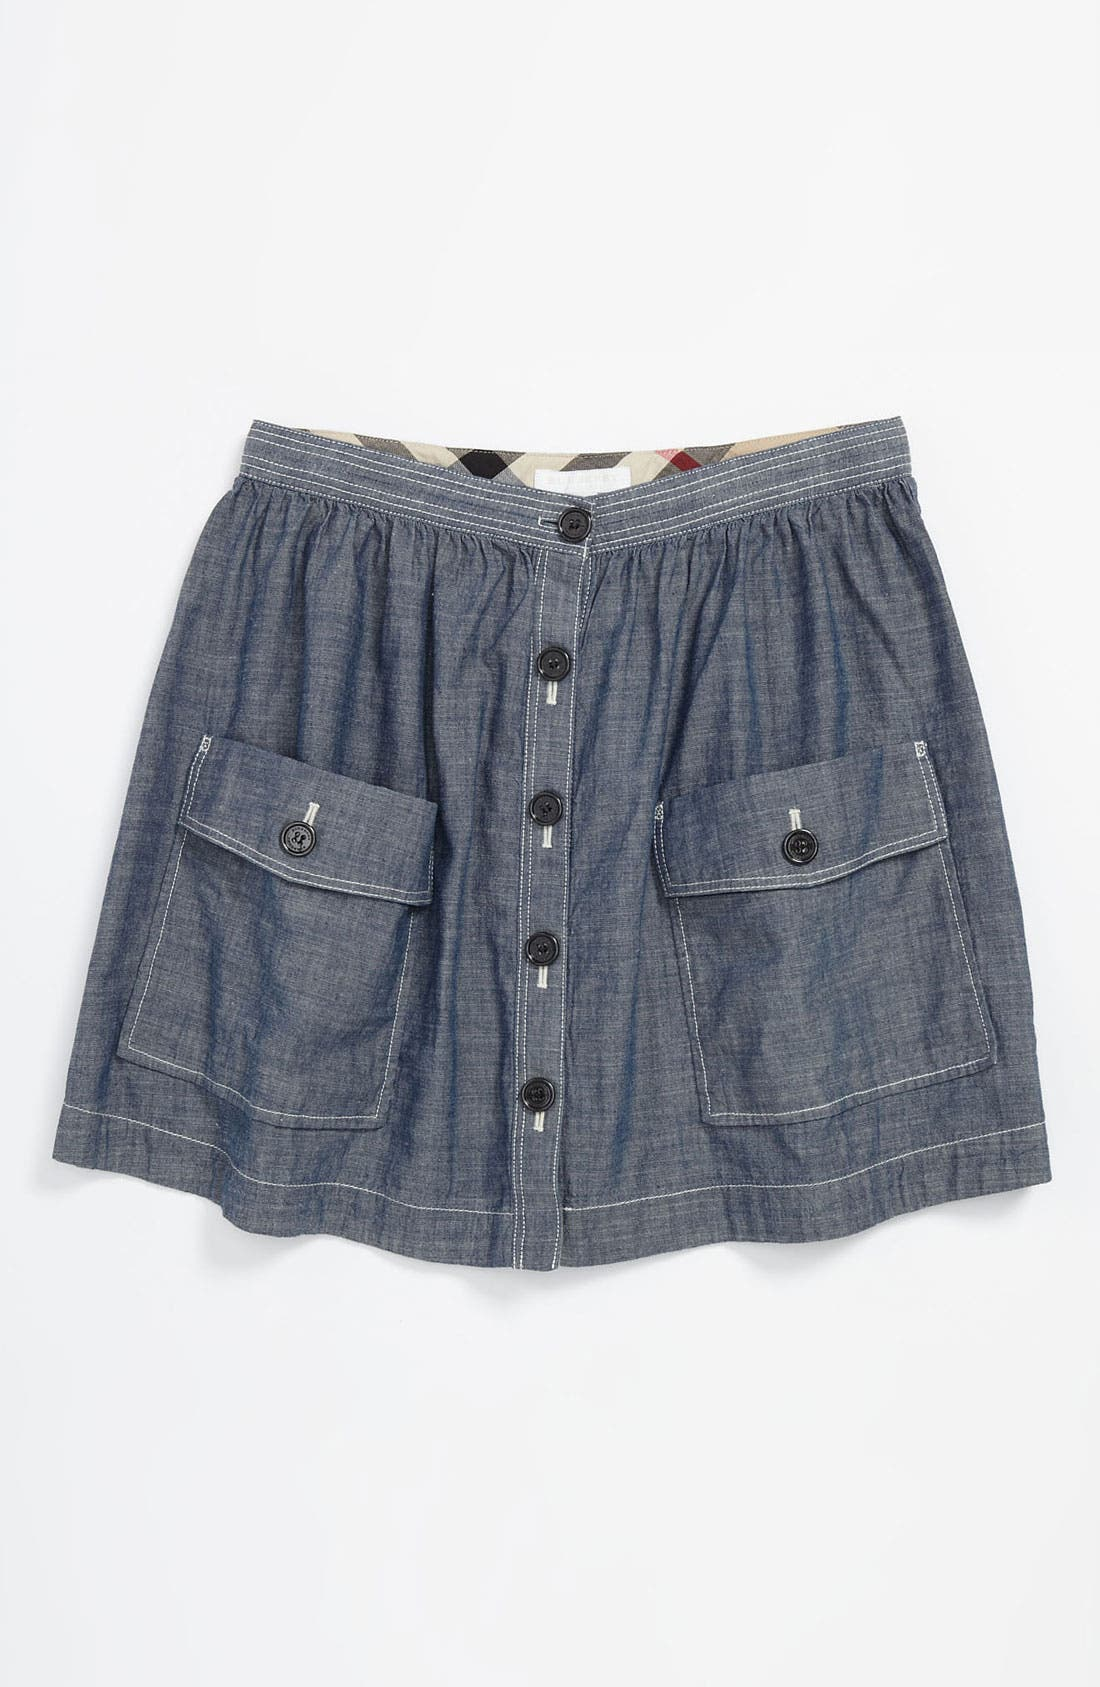 Alternate Image 1 Selected - Burberry 'Silvie' Button Front Chambray Skirt (Little Girls & Big Girls)